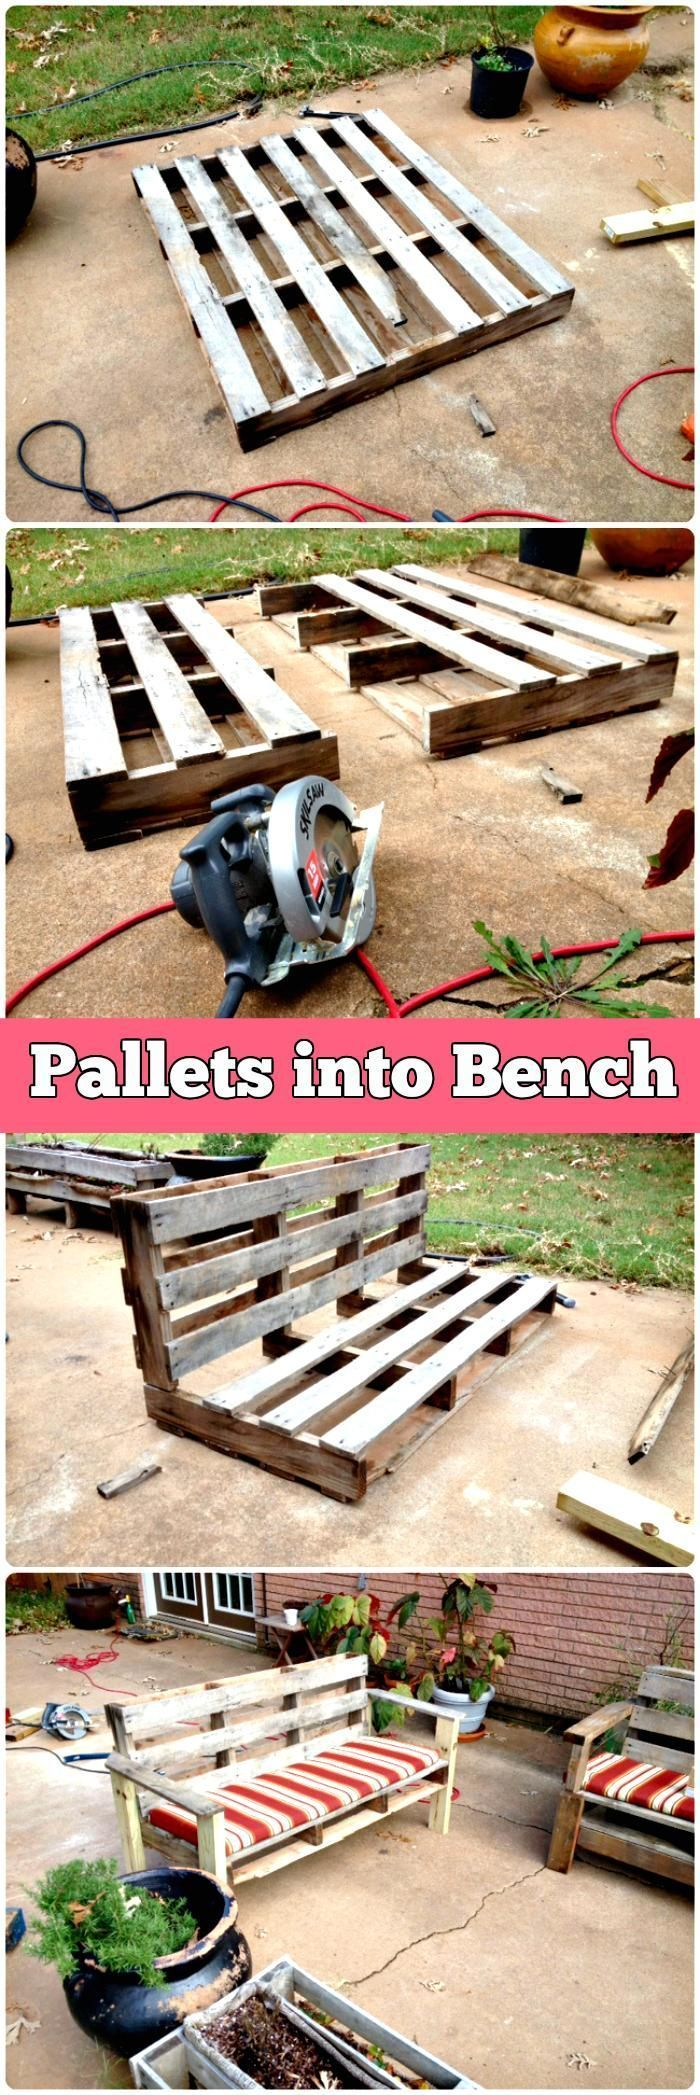 Photo of 5 Easy Step DIY Transformation – Pallet in patio bench for outdoor use …